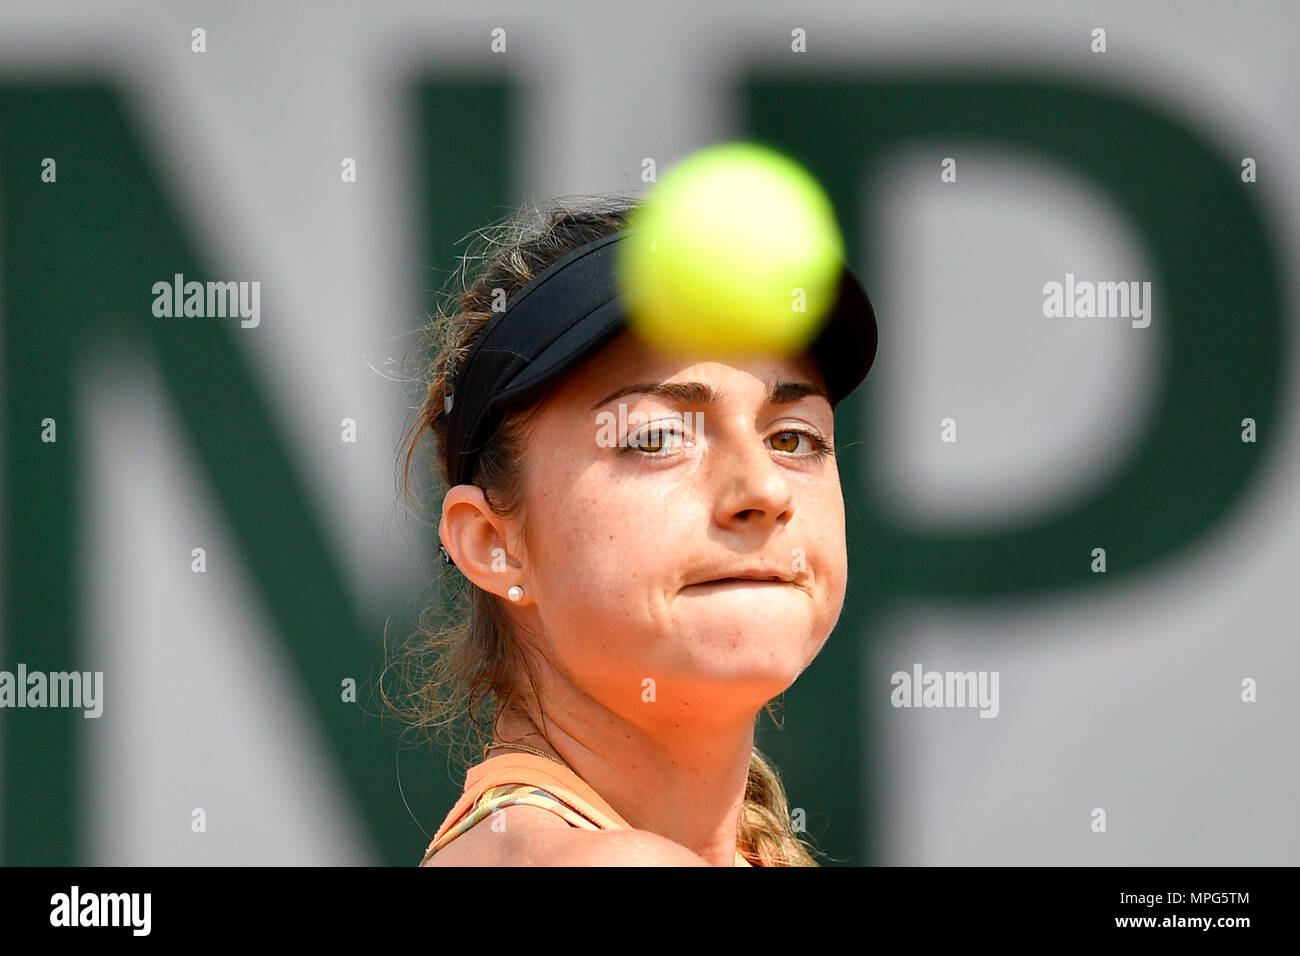 Paris, France. 23rd May, 2018. Margot Yerolymos of France eyes on the ball during the women's singles Qualification 1st round match of French Open against Lu Jiajing of China in Paris, France on May 23, 2018. Margot Yerolymos won 2-0. Credit: Chen Yichen/Xinhua/Alamy Live News Stock Photo